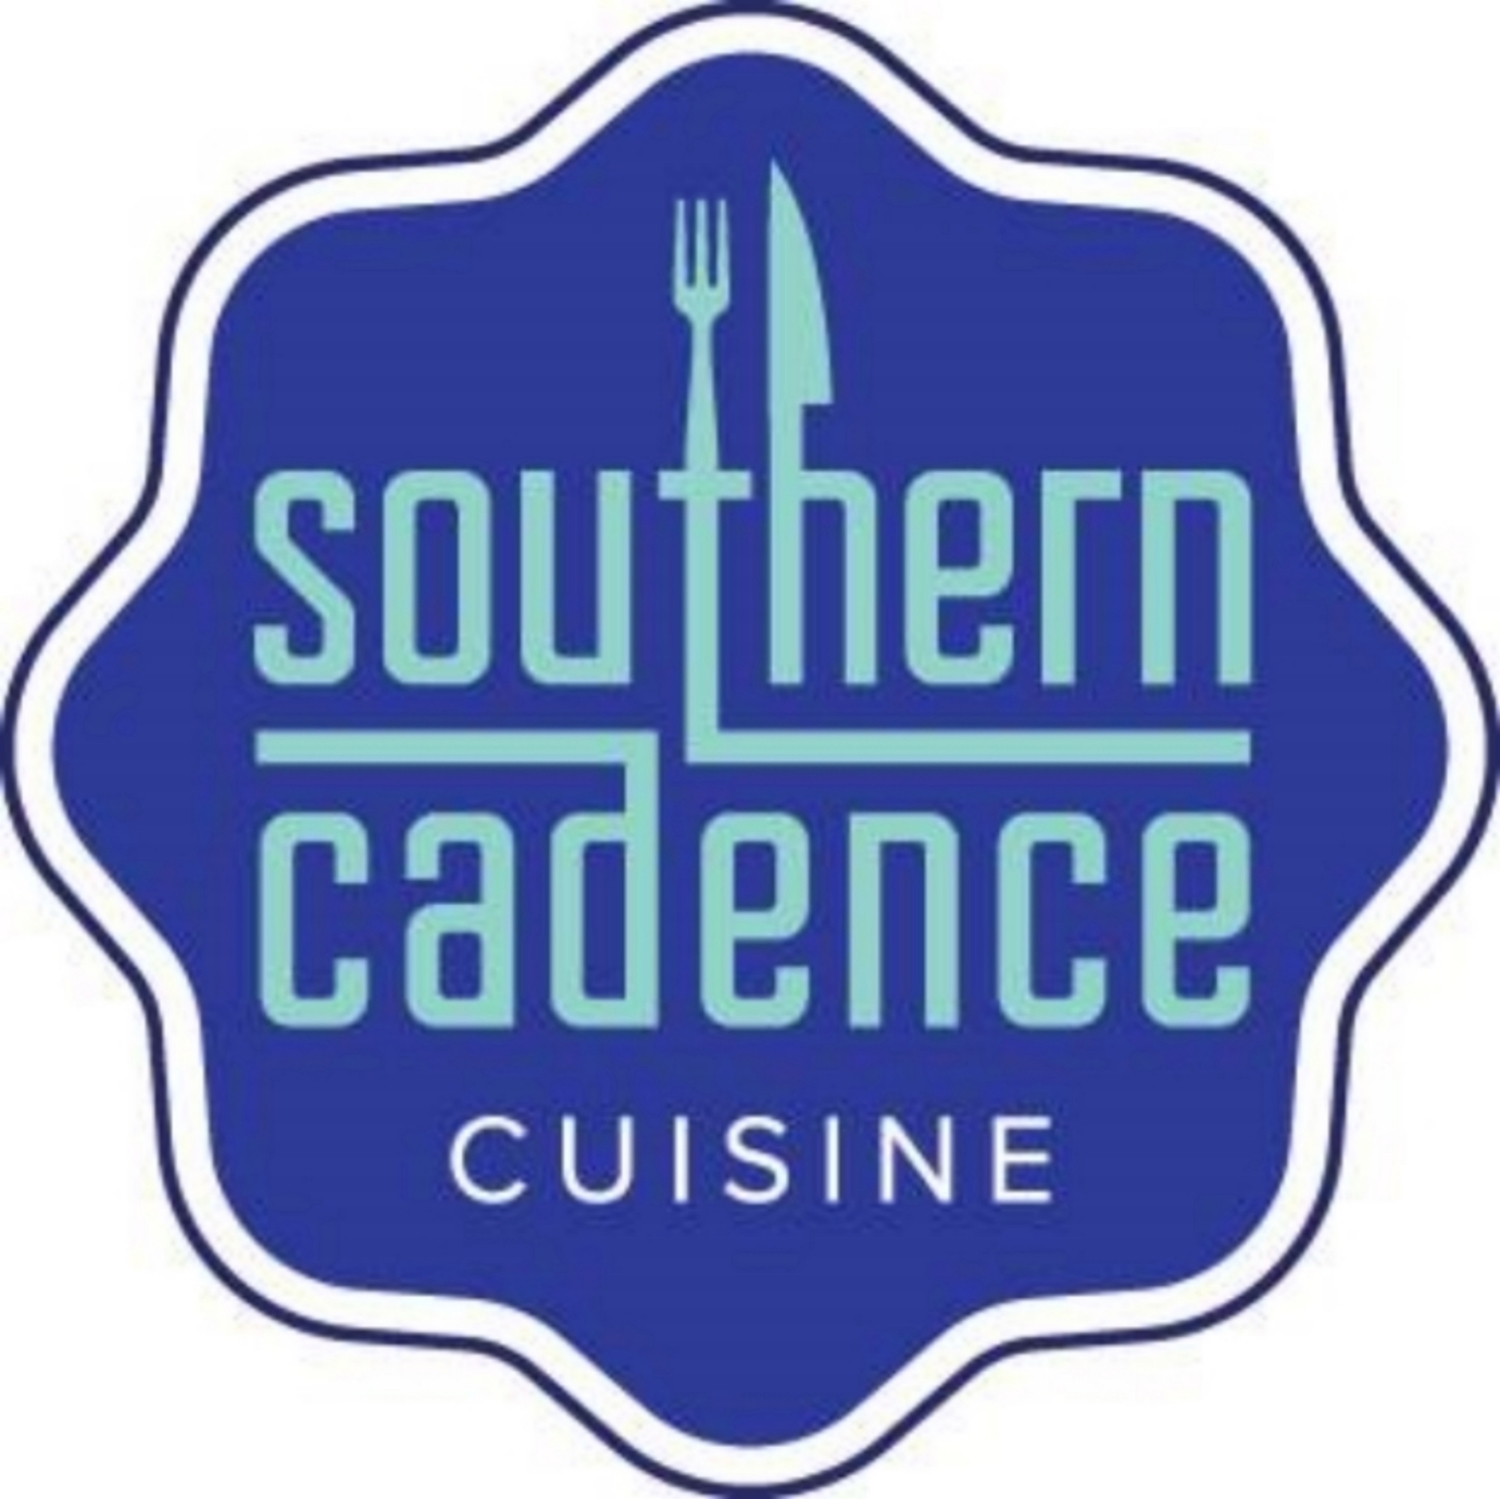 Southern Cadence Cuisine | Dinner Parties | Cooking Classes | Private Chef